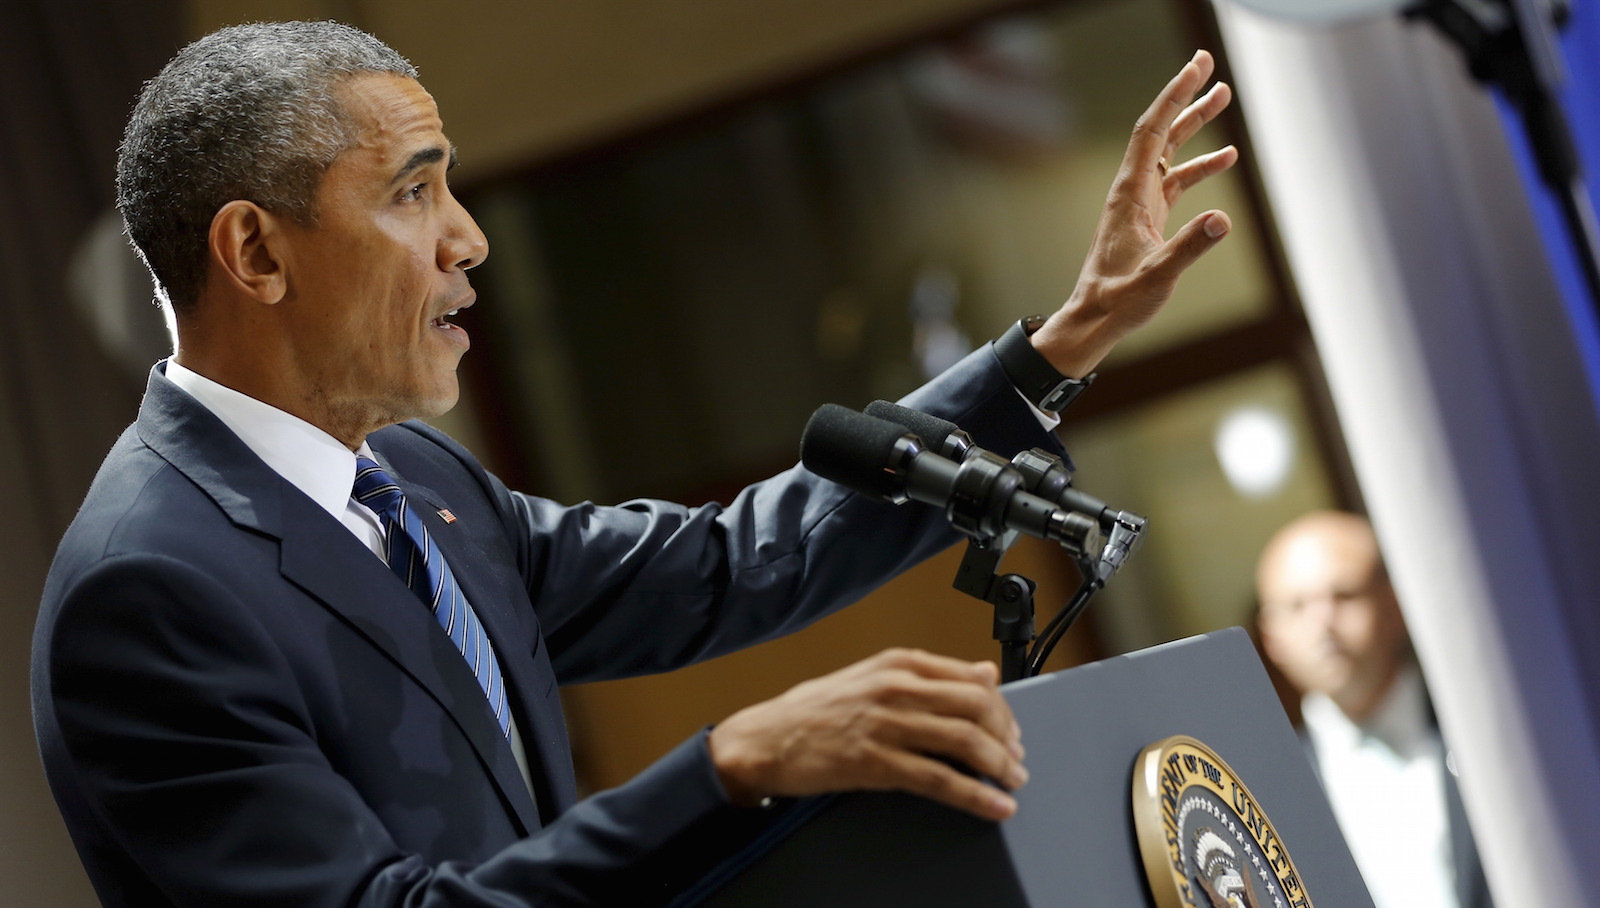 Obama delivers remarks on a nuclear deal with Iran at American University in Washington